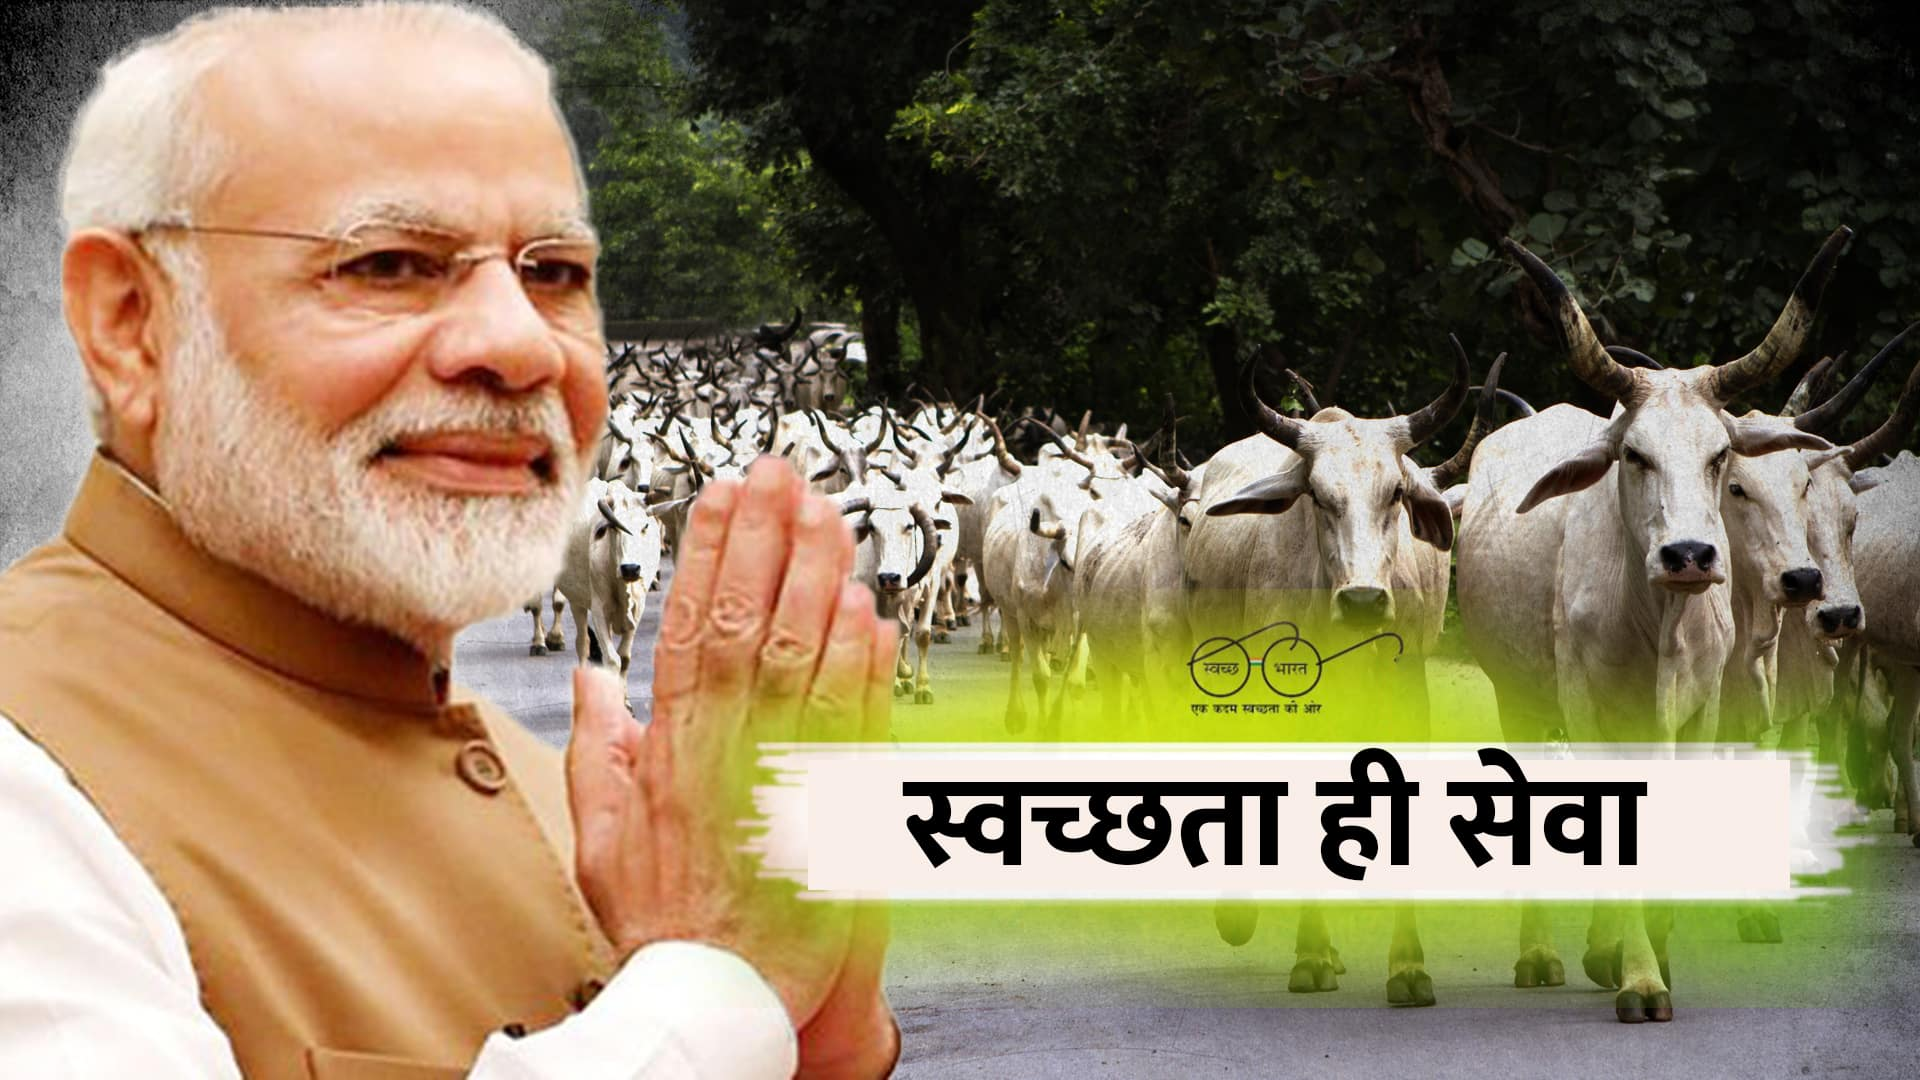 news reports suggest cow deaths due to PM Modi event is baseless